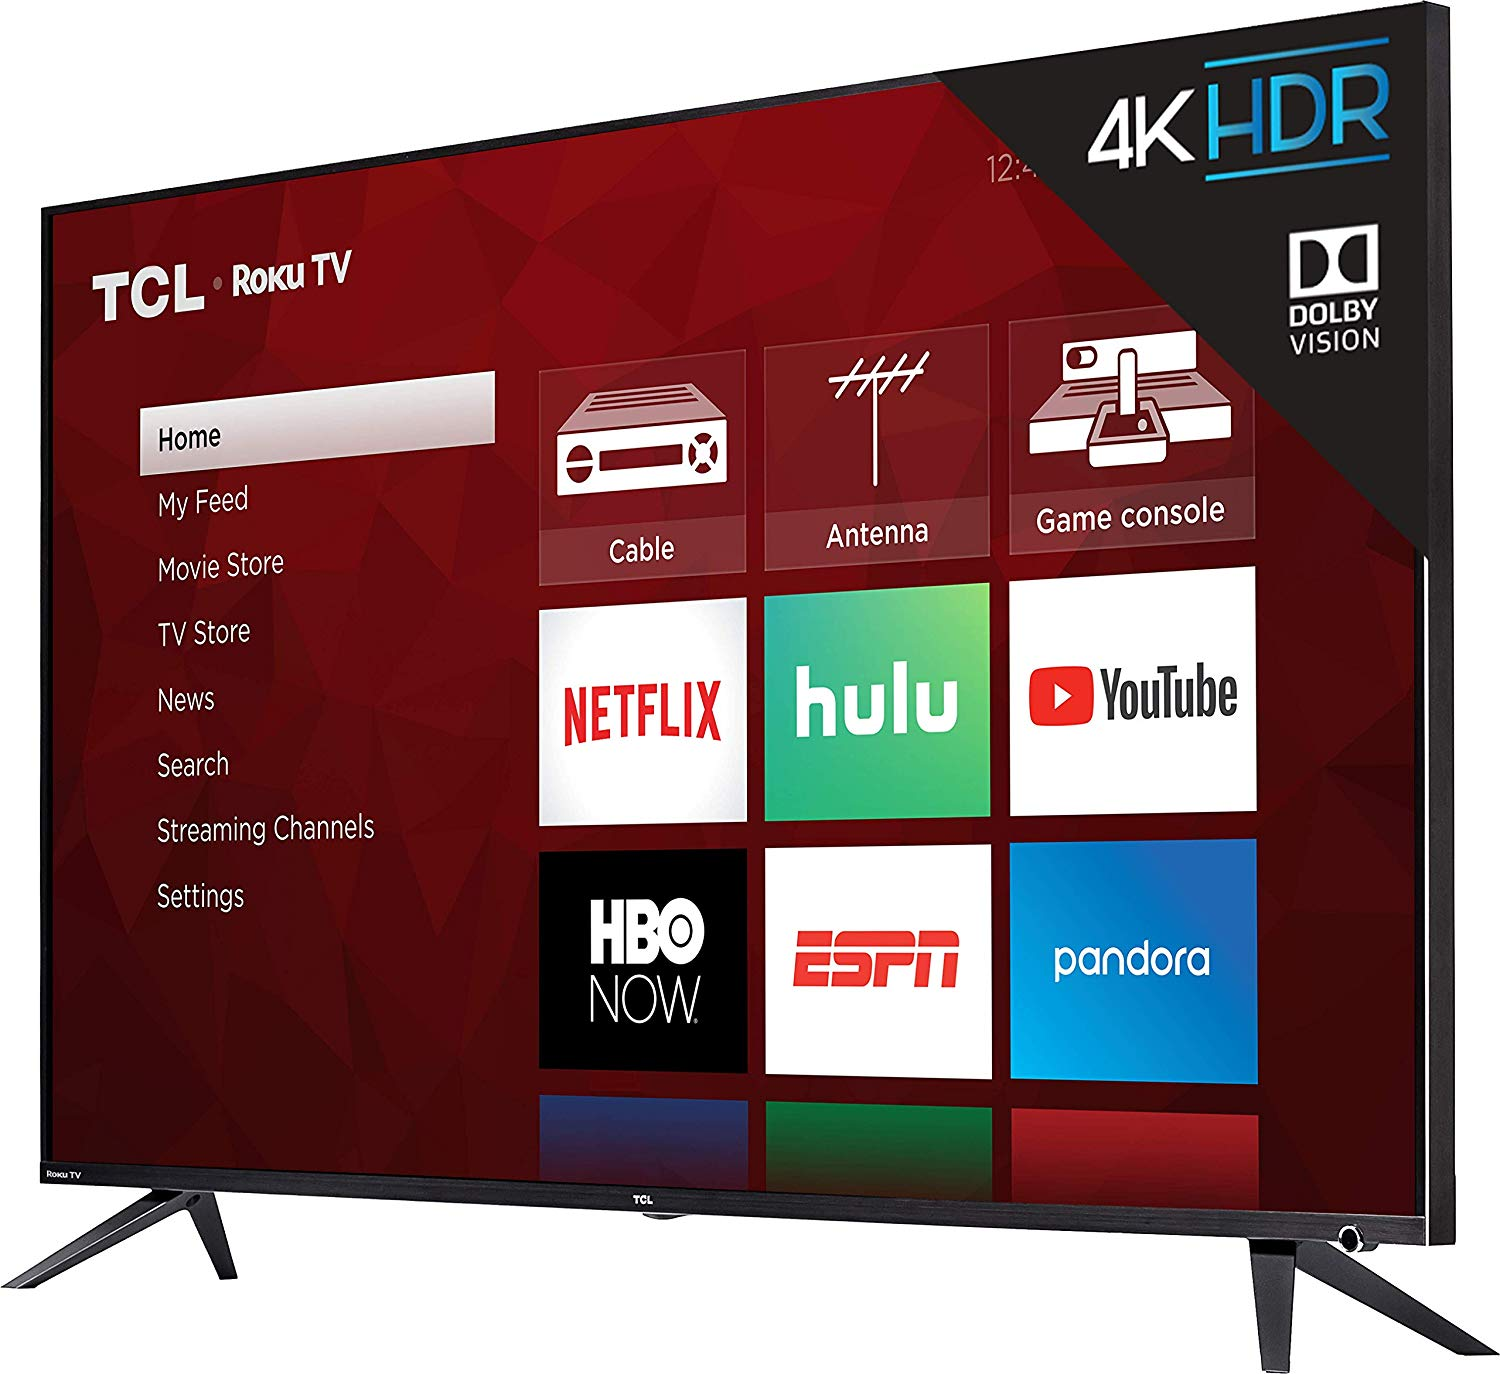 TCL 55-inch 4K Roku TV currently available for $479 ($50 off) - Android Police